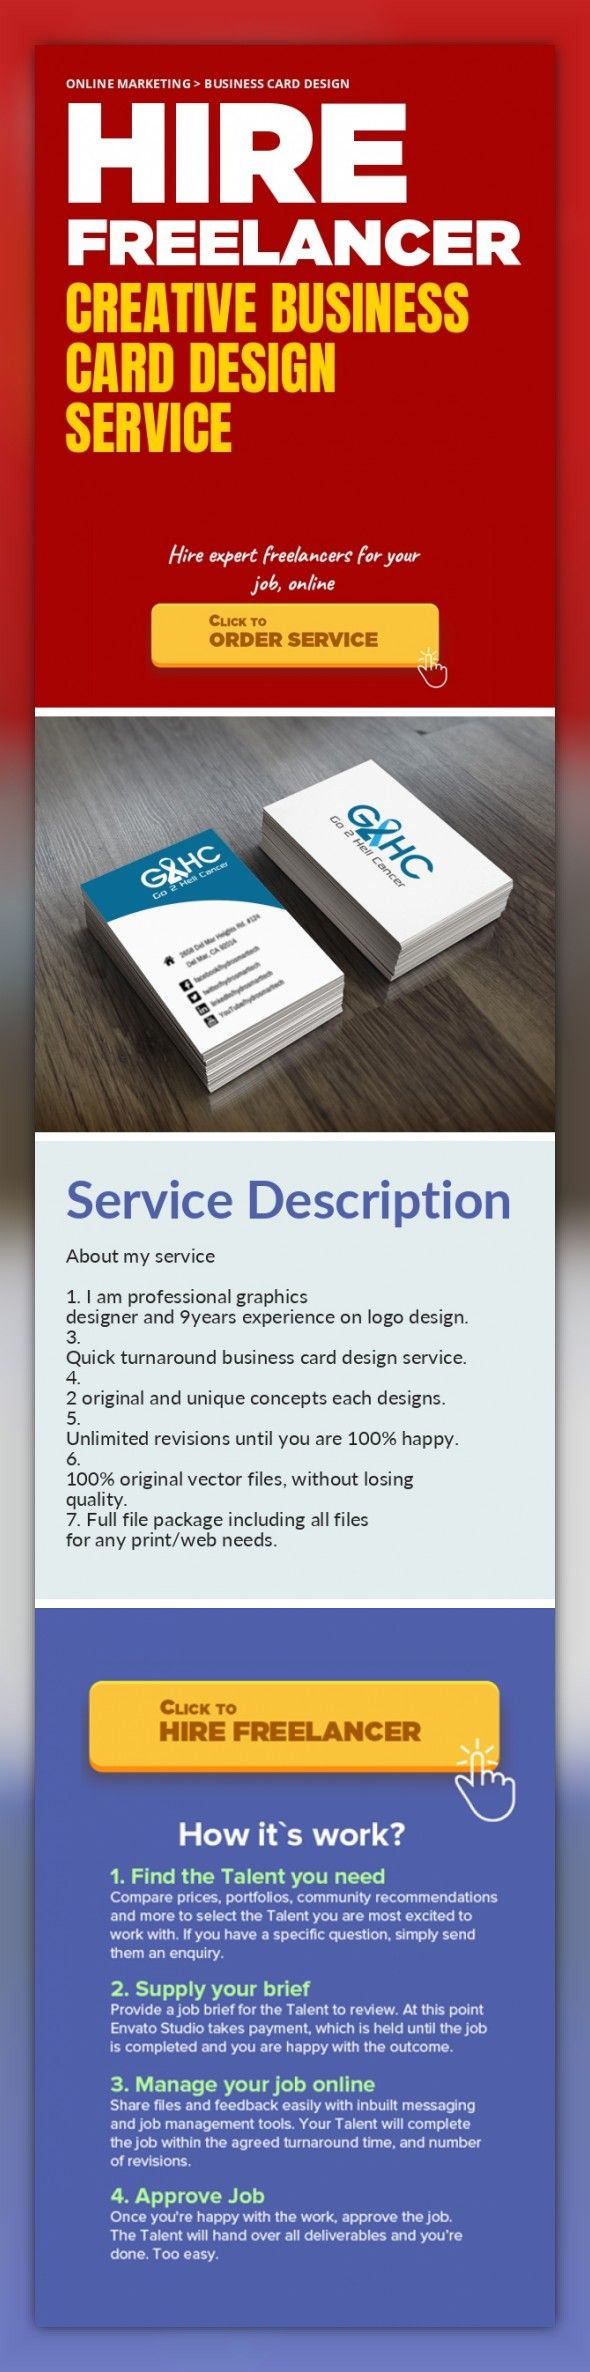 Fancy quick turnaround business cards ornament business card ideas quick turnaround business cards melbourne images card design and reheart Choice Image